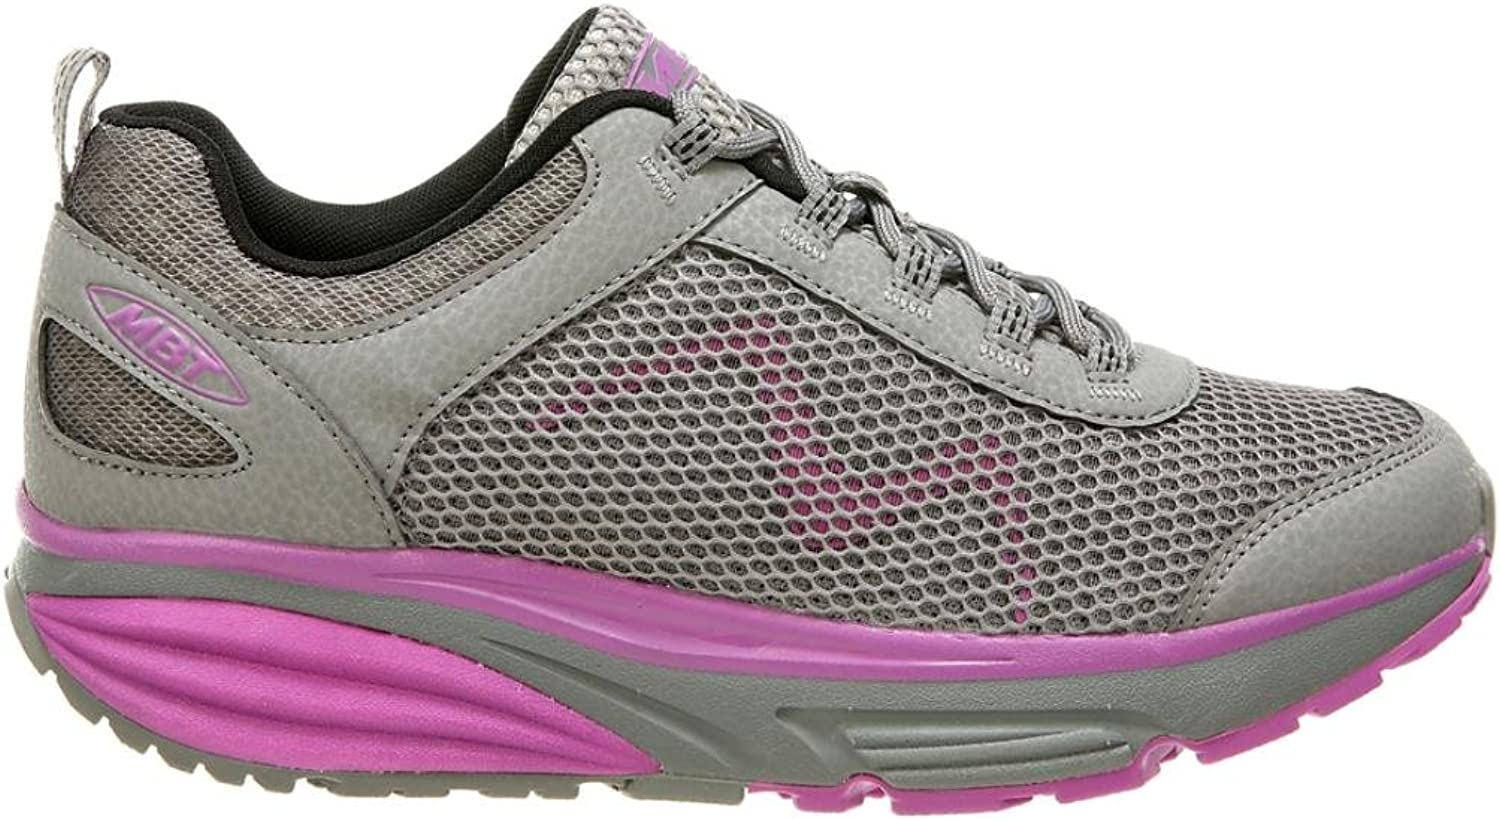 MBT shoes Women's colorado 17 Athletic shoes mesh lace-up